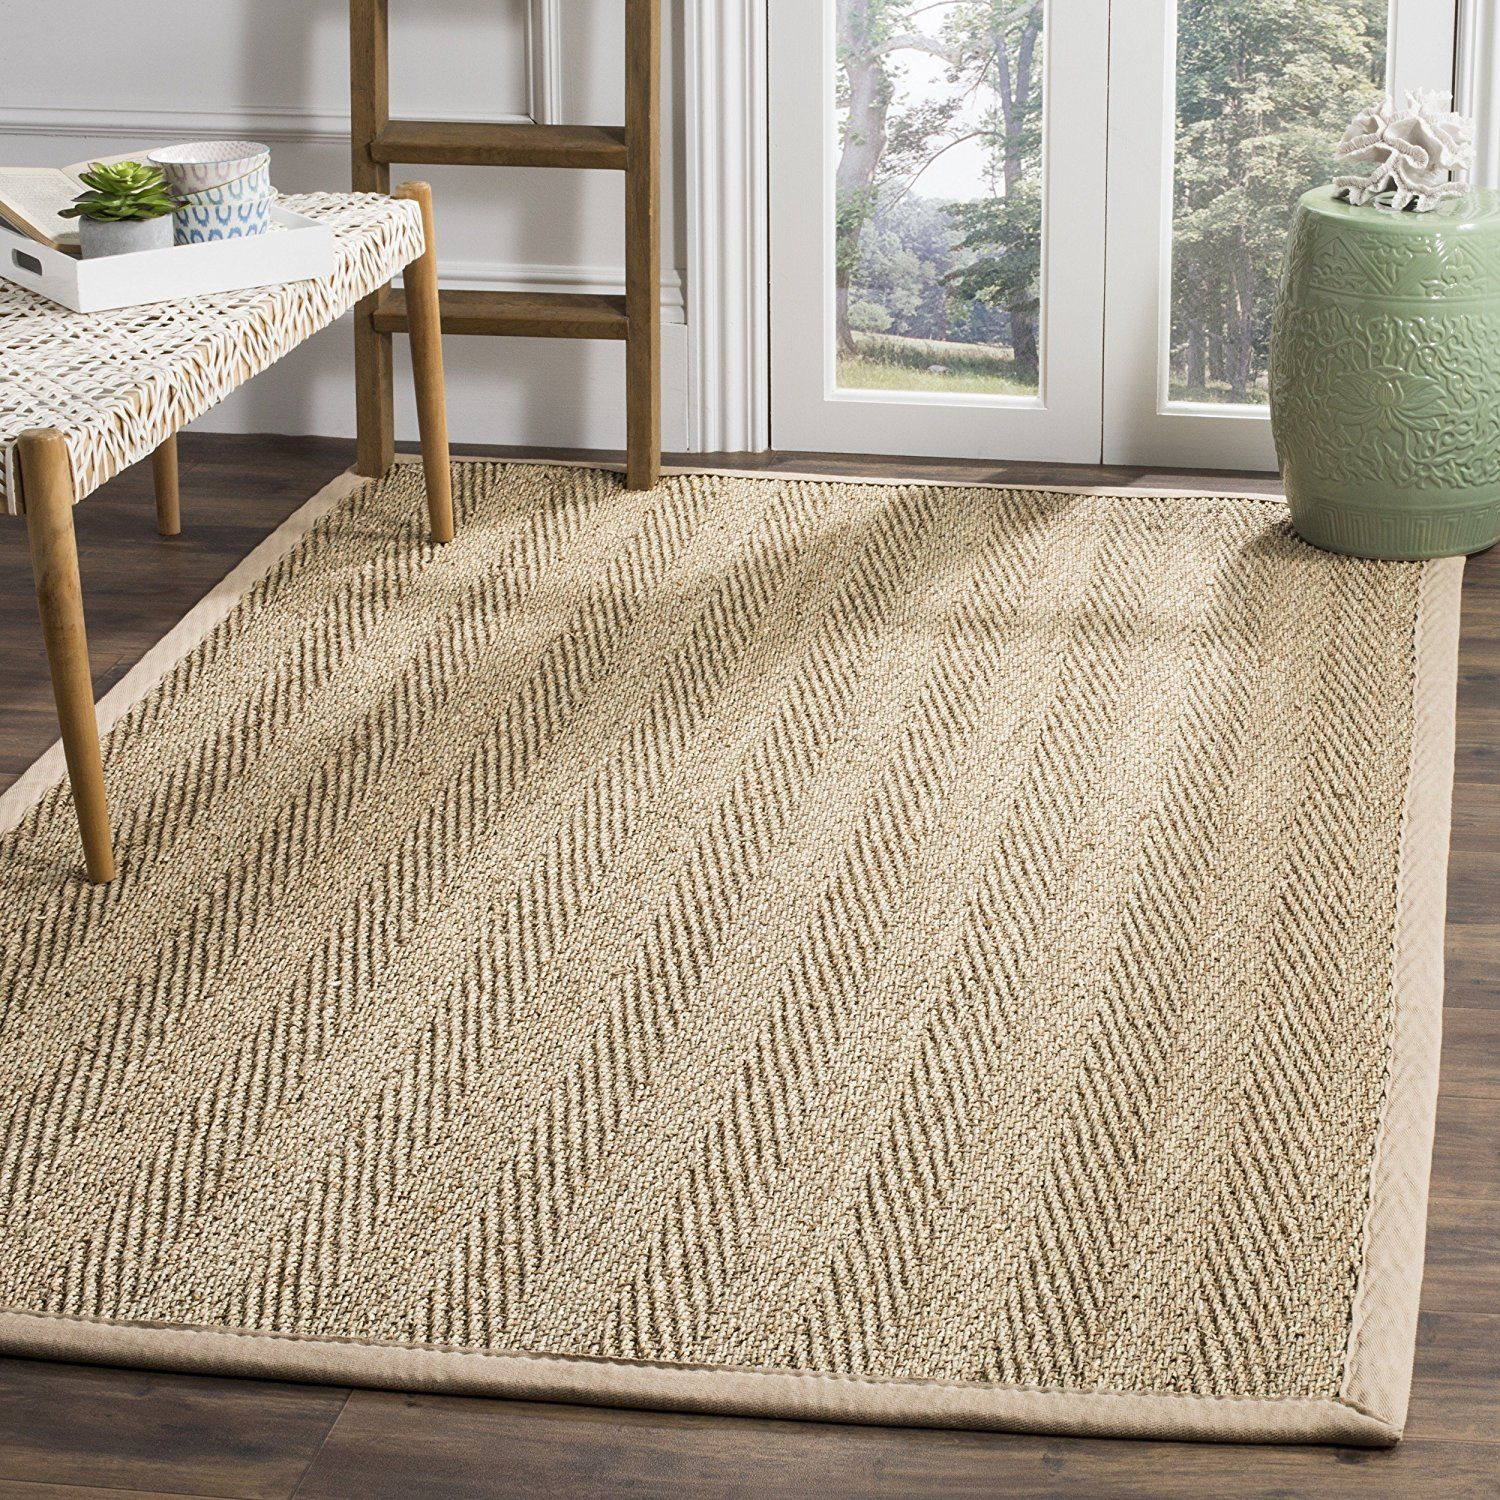 Amazon Com Safavieh Natural Fiber Collection Nf115a Herringbone Natural And Beige Seagrass Area Rug 6 X 9 Seagrass Rug Seagrass Area Rug Natural Fiber Rugs